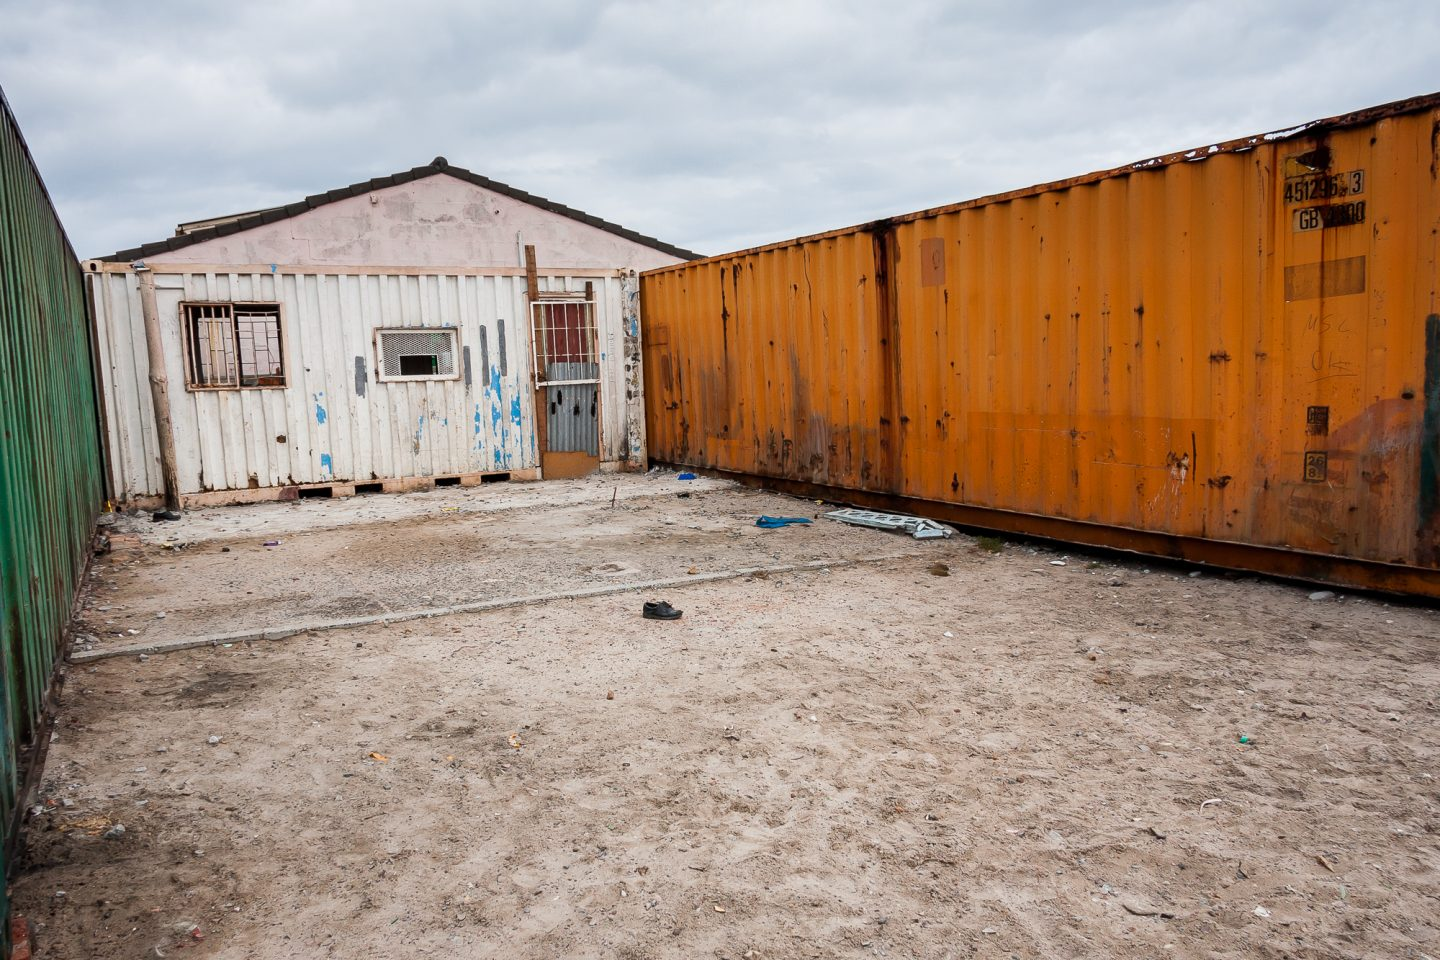 The community organisation were given three containers by a sponsor to create a safe haven for the youth of the area.